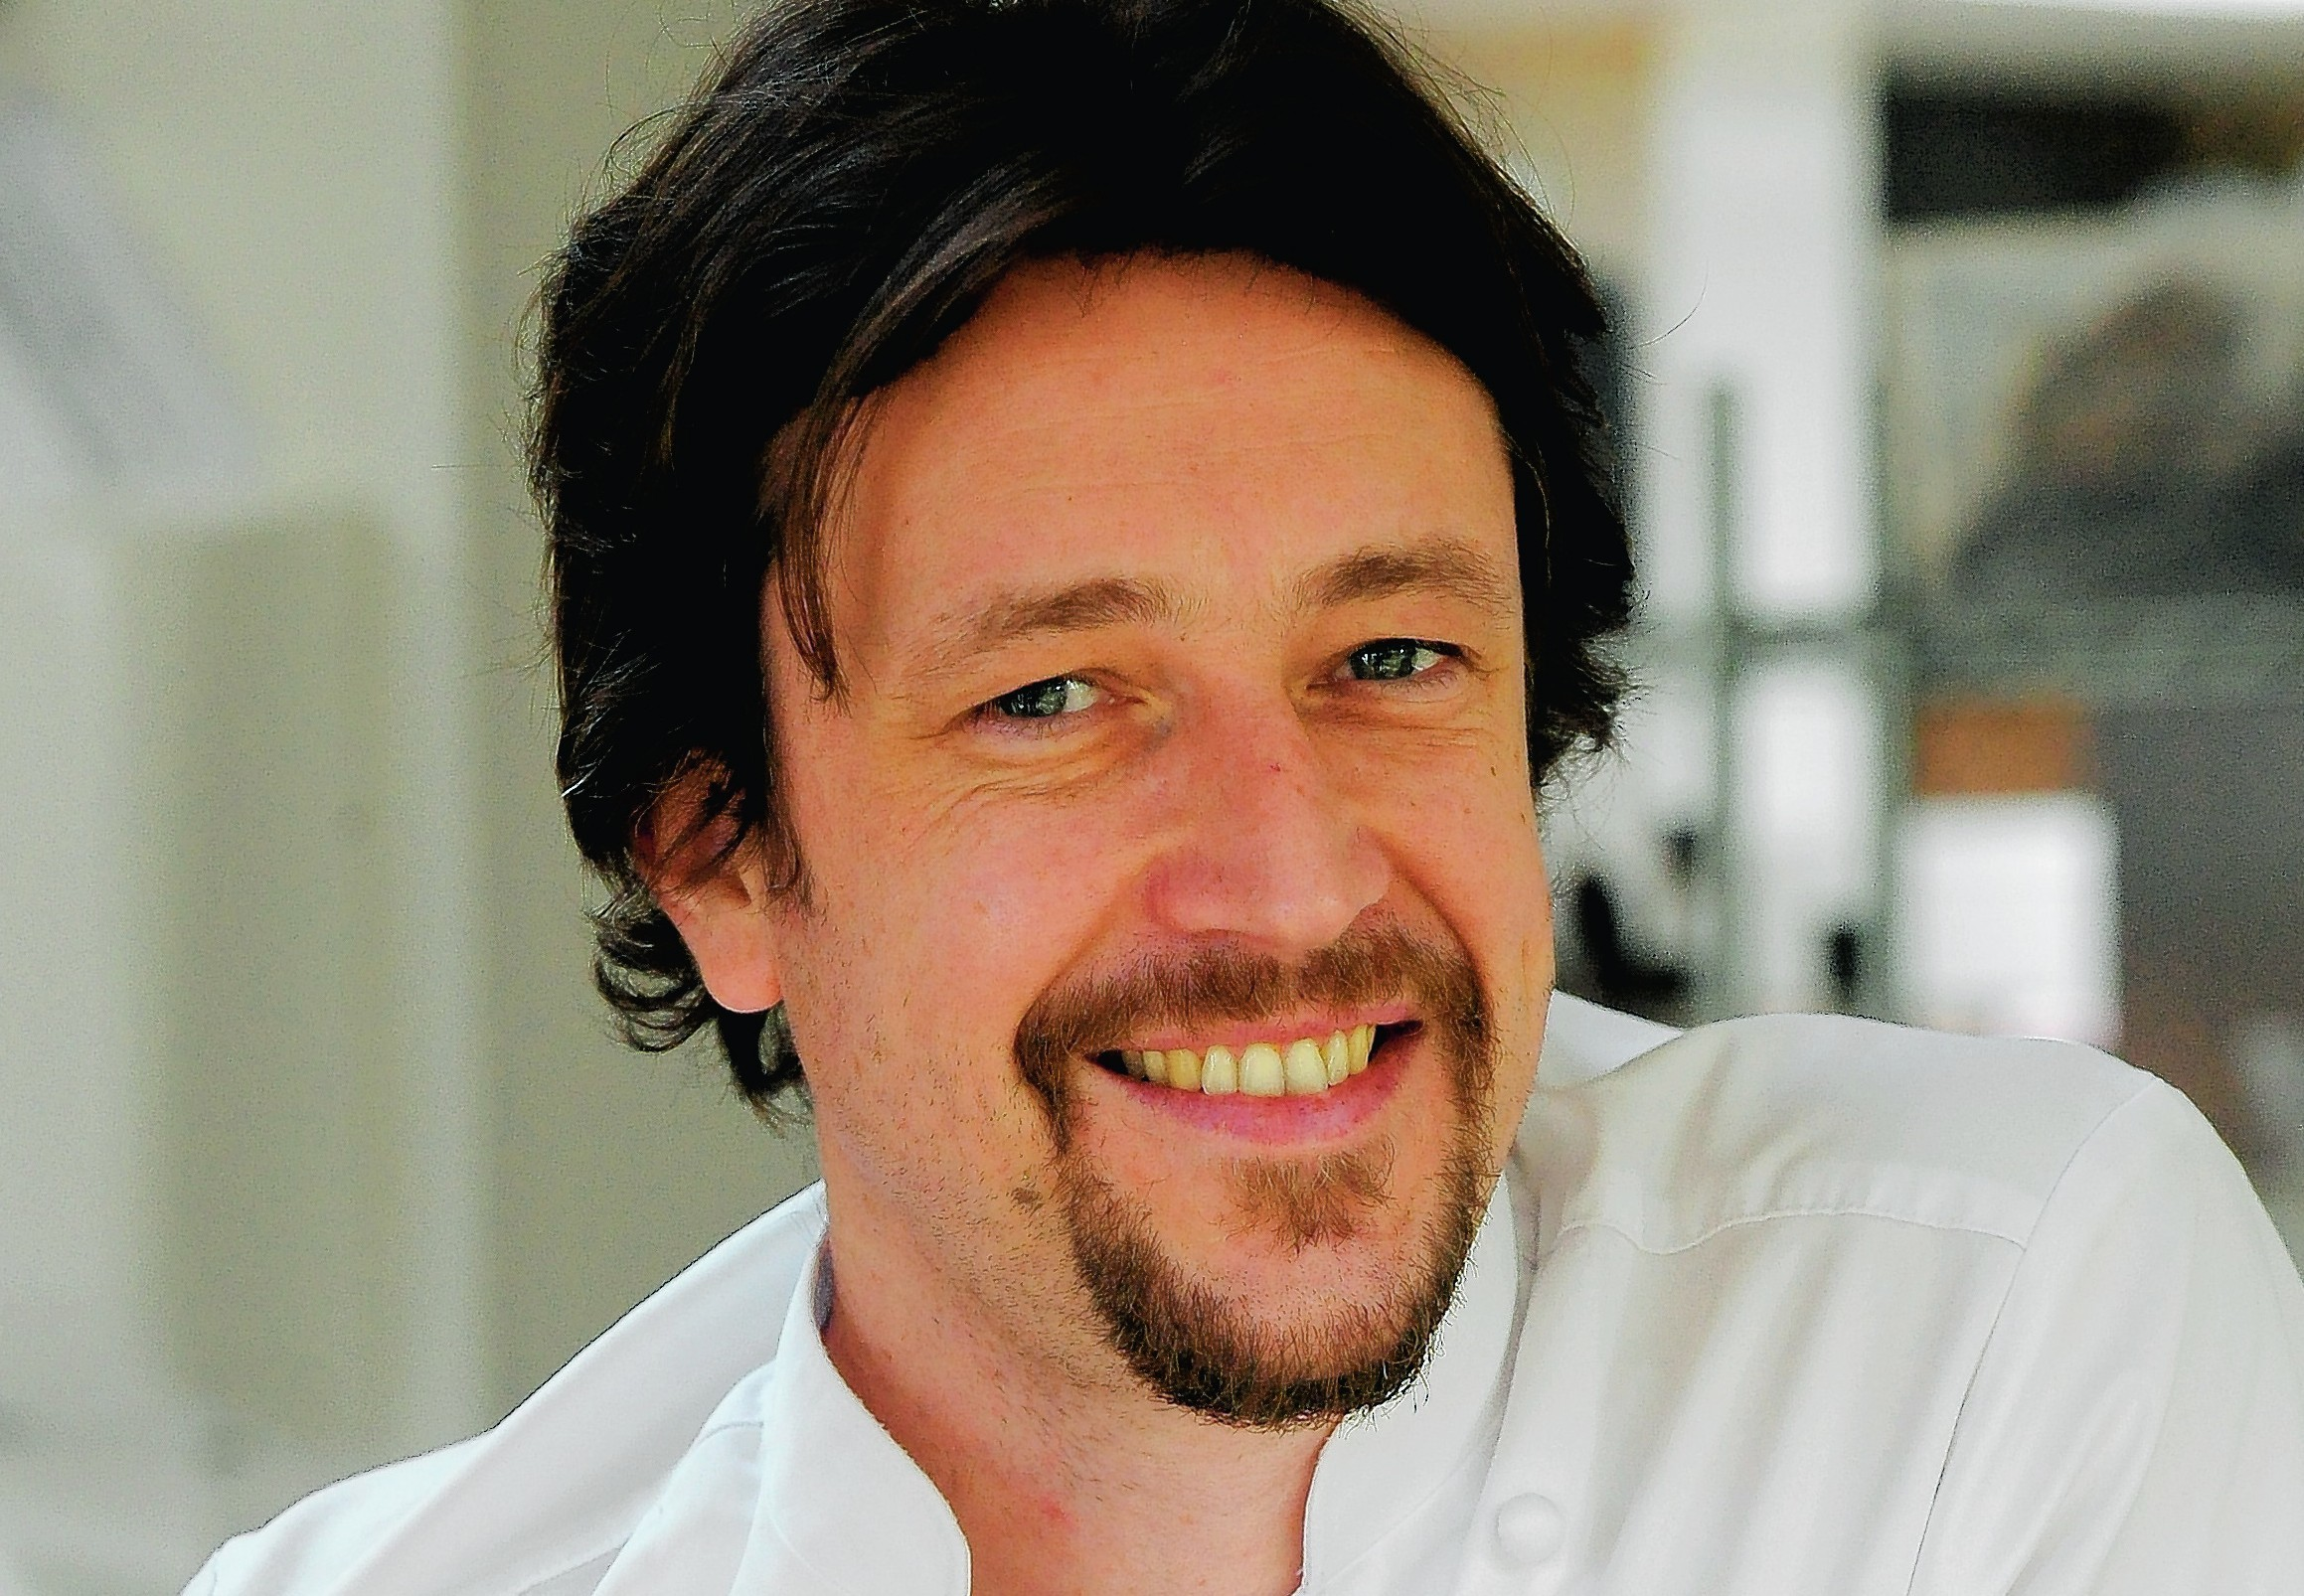 Michael Smith, Executive Chef, Three Chimneys